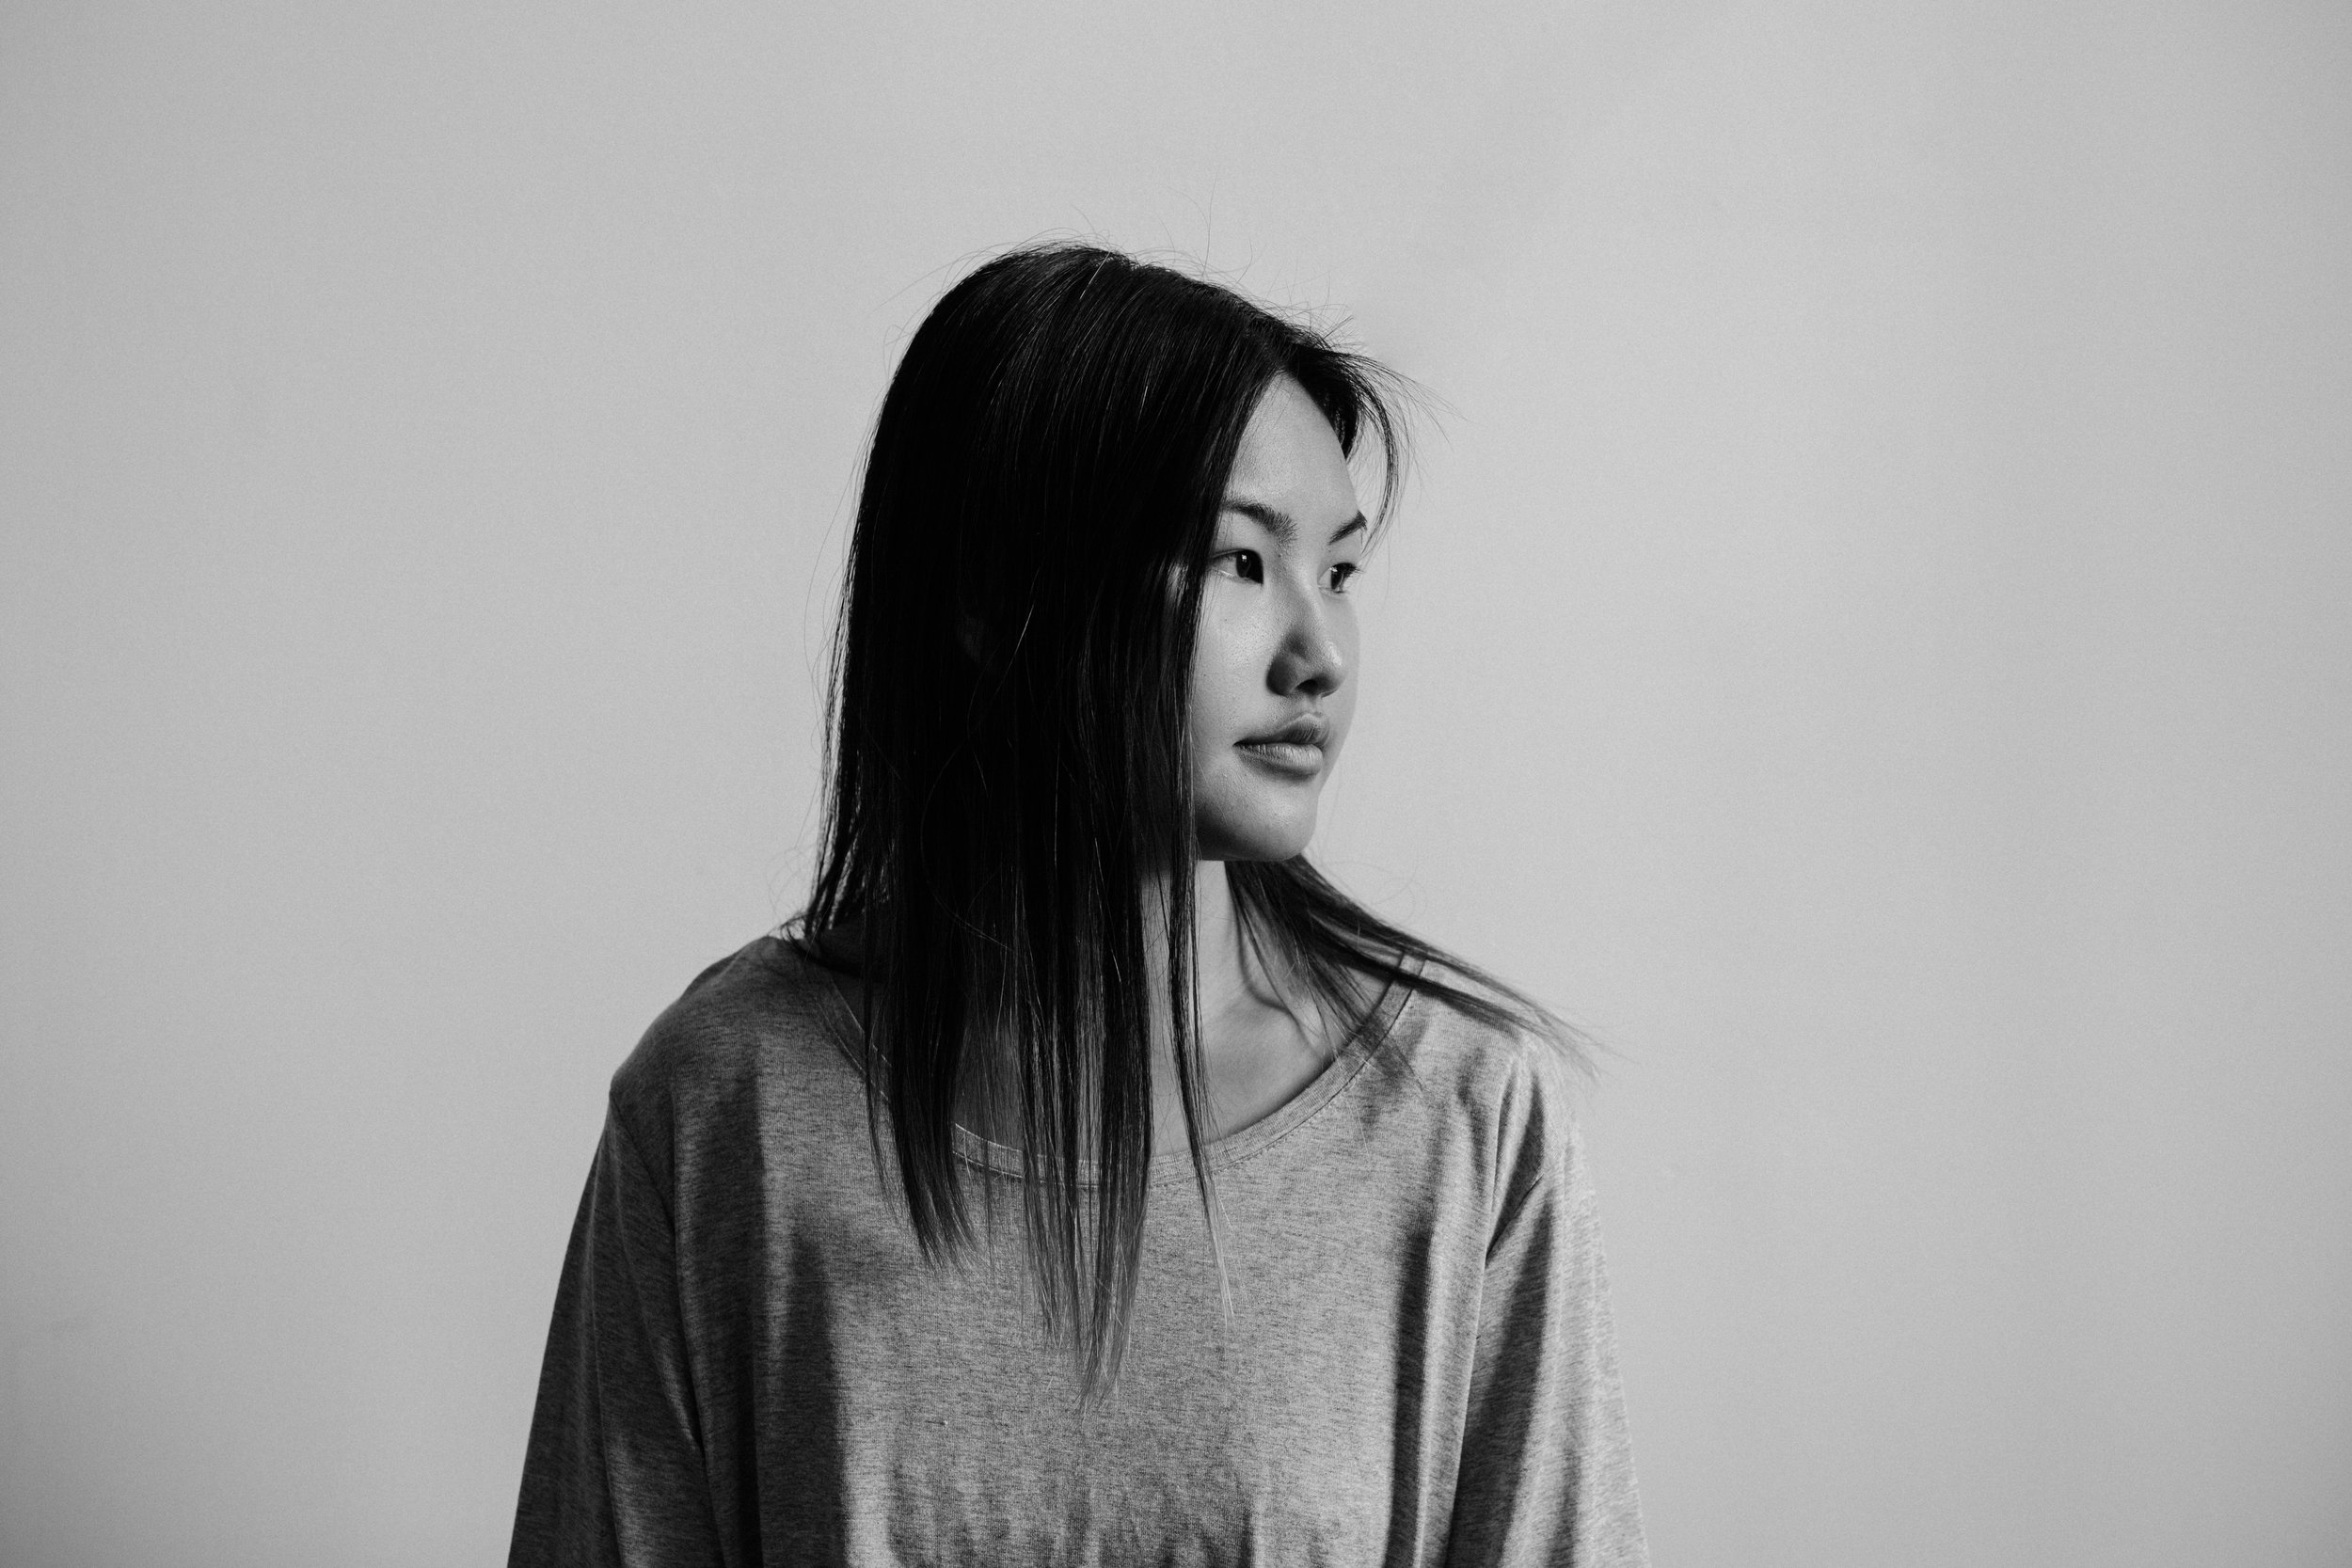 Meet Dao. She hopes her story will help other victims of human trafficking walk into freedom fully restored.